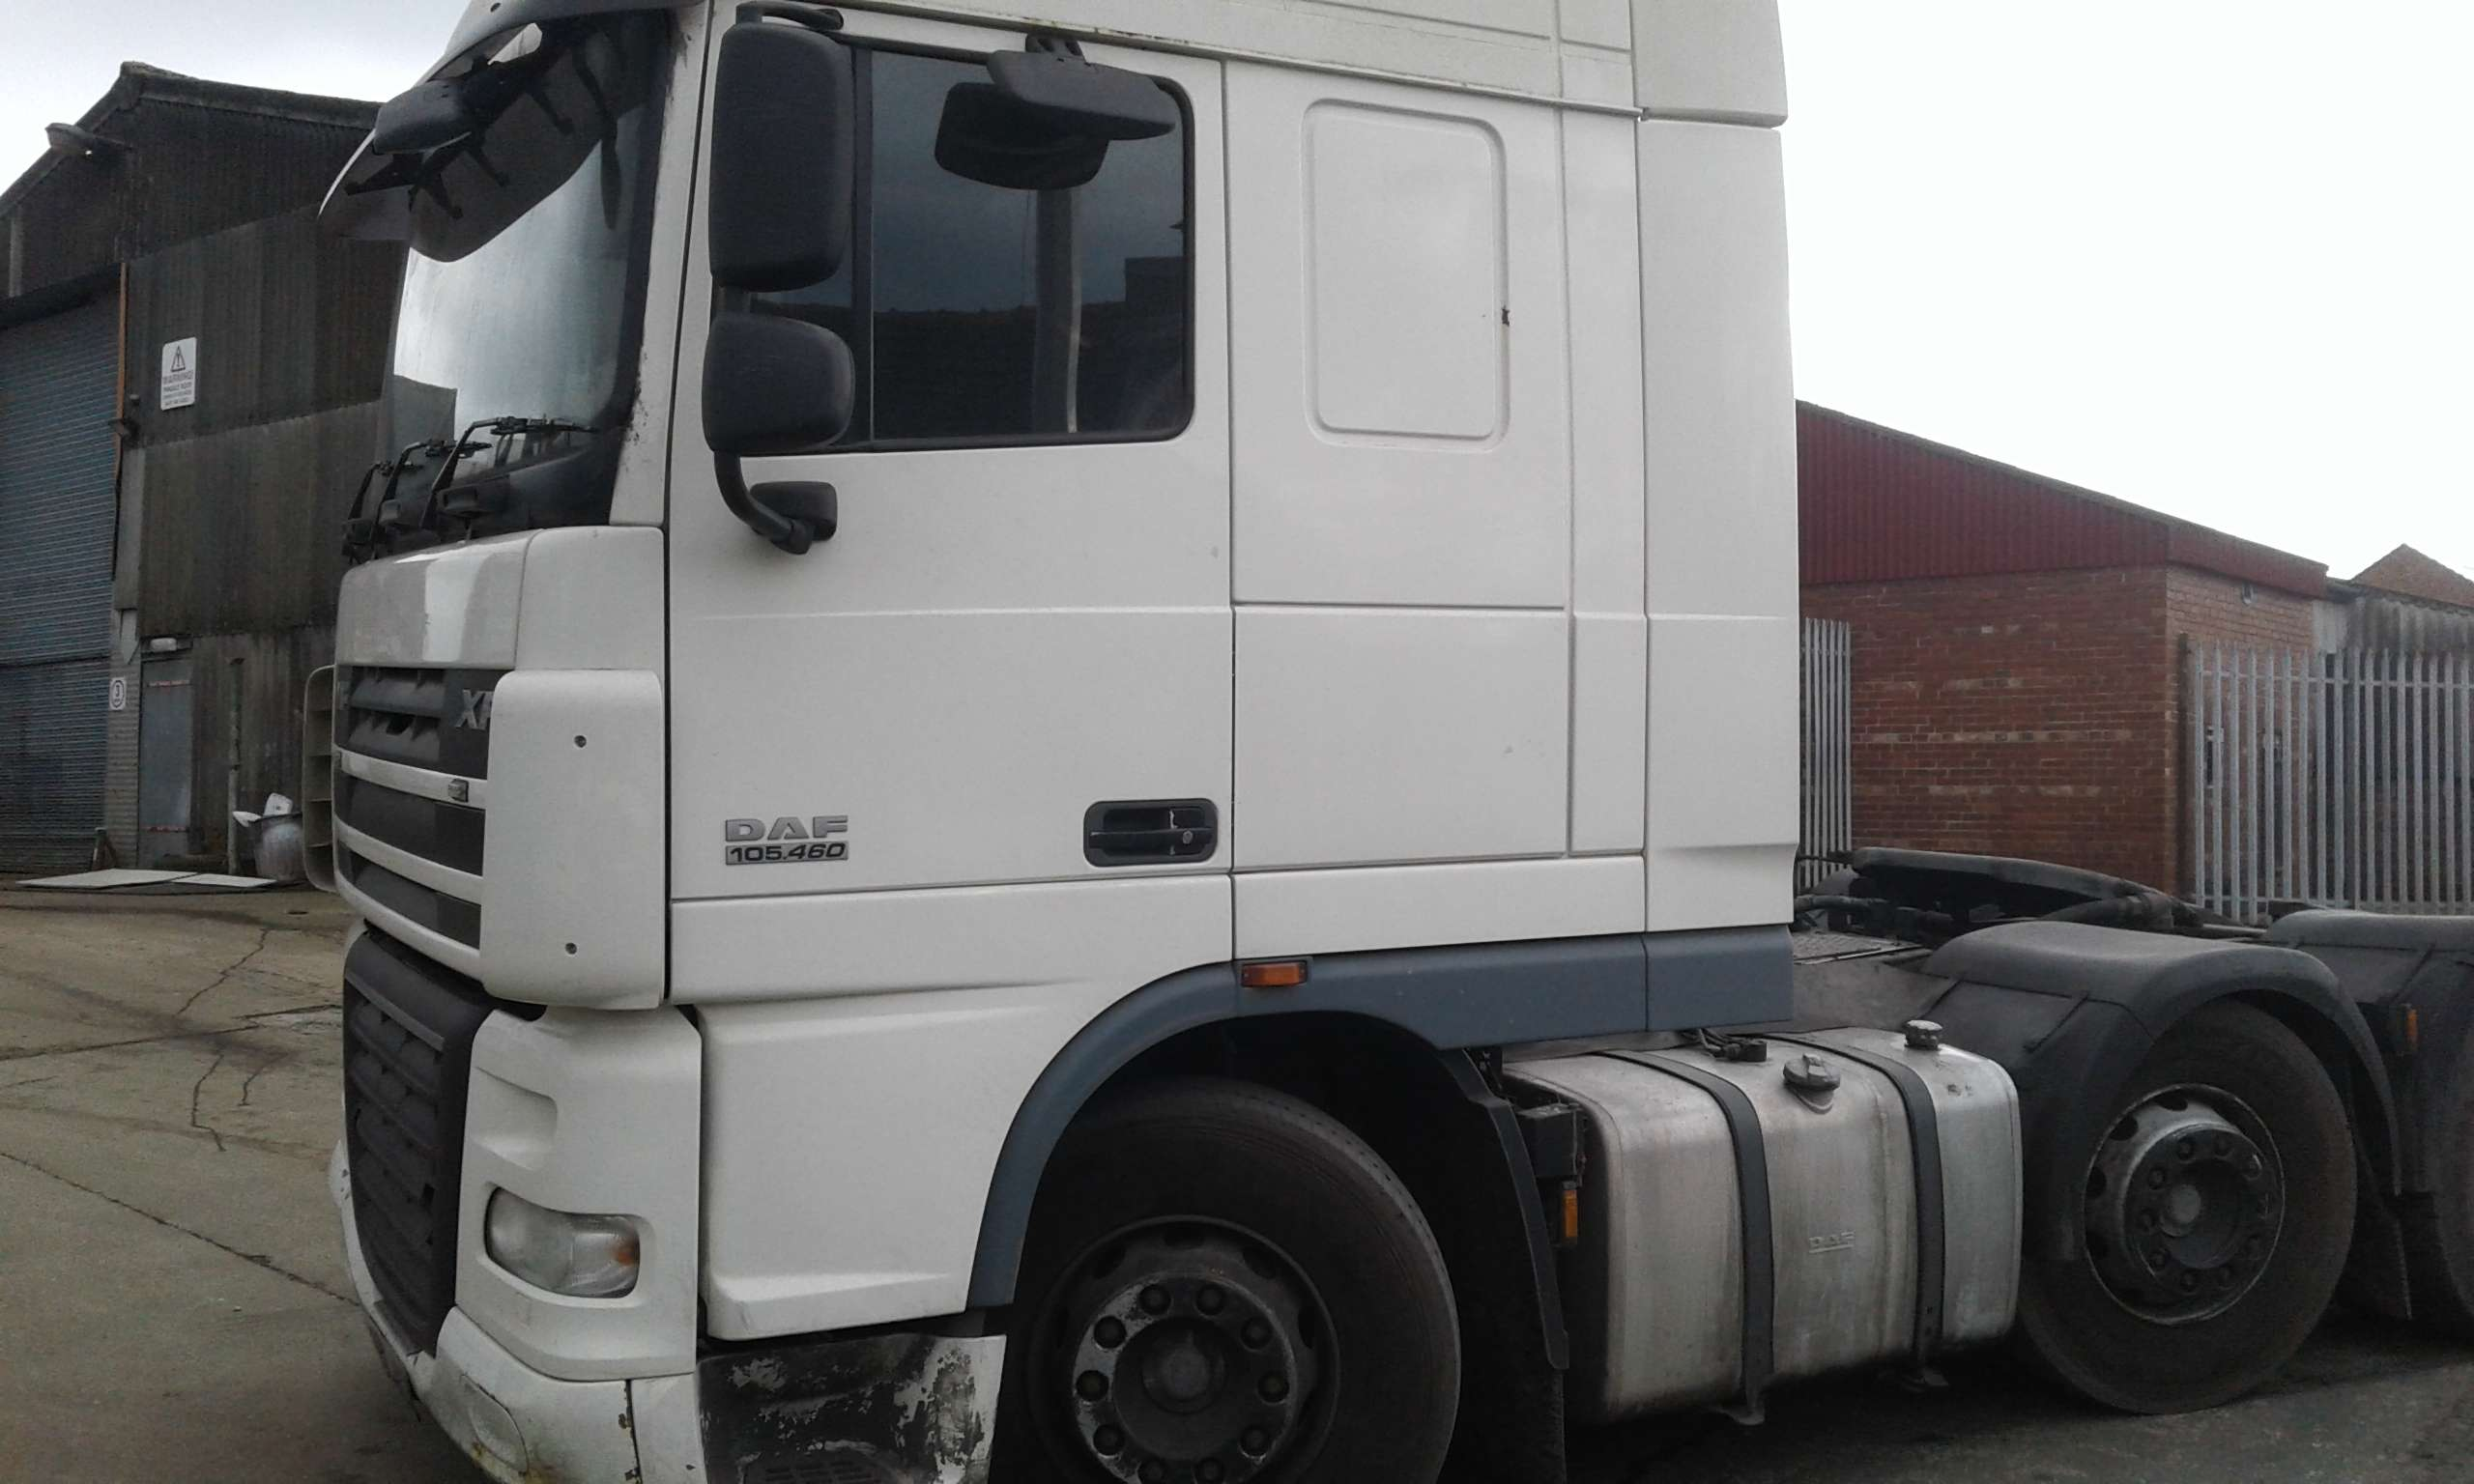 2010 DAF XF105 460 6x2 Tractor Units For Sale |